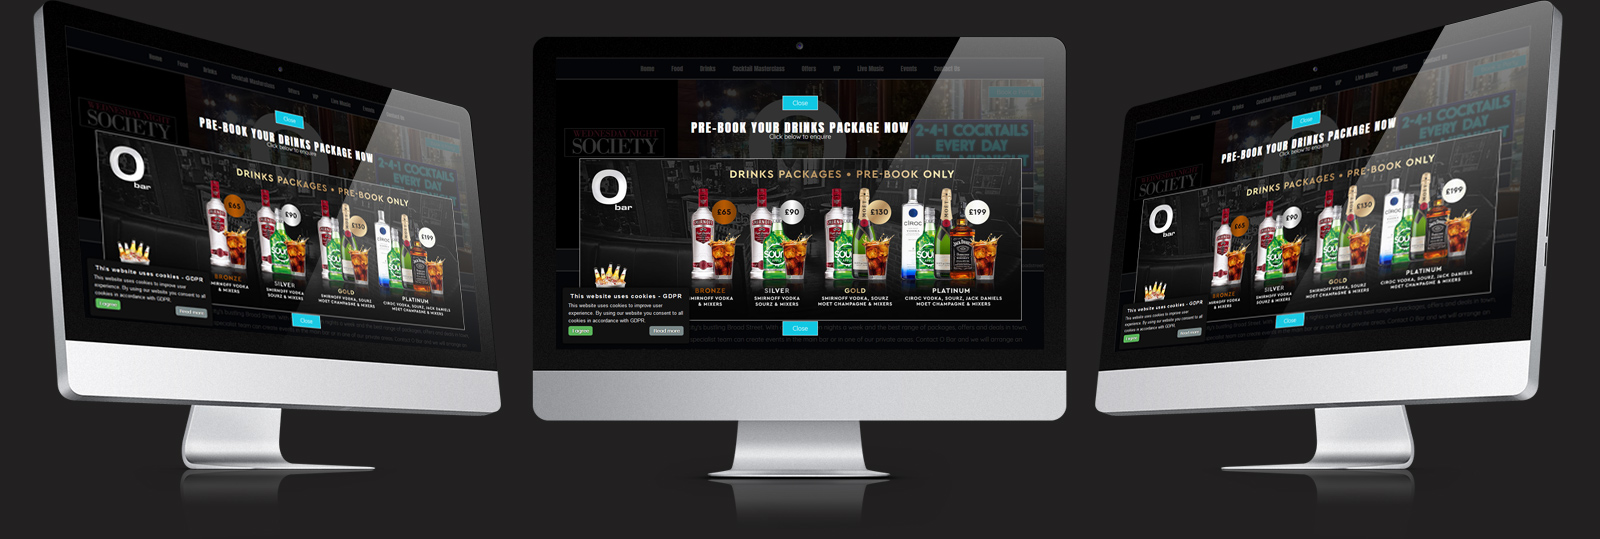 Stamford Web Design - O Bar Brum